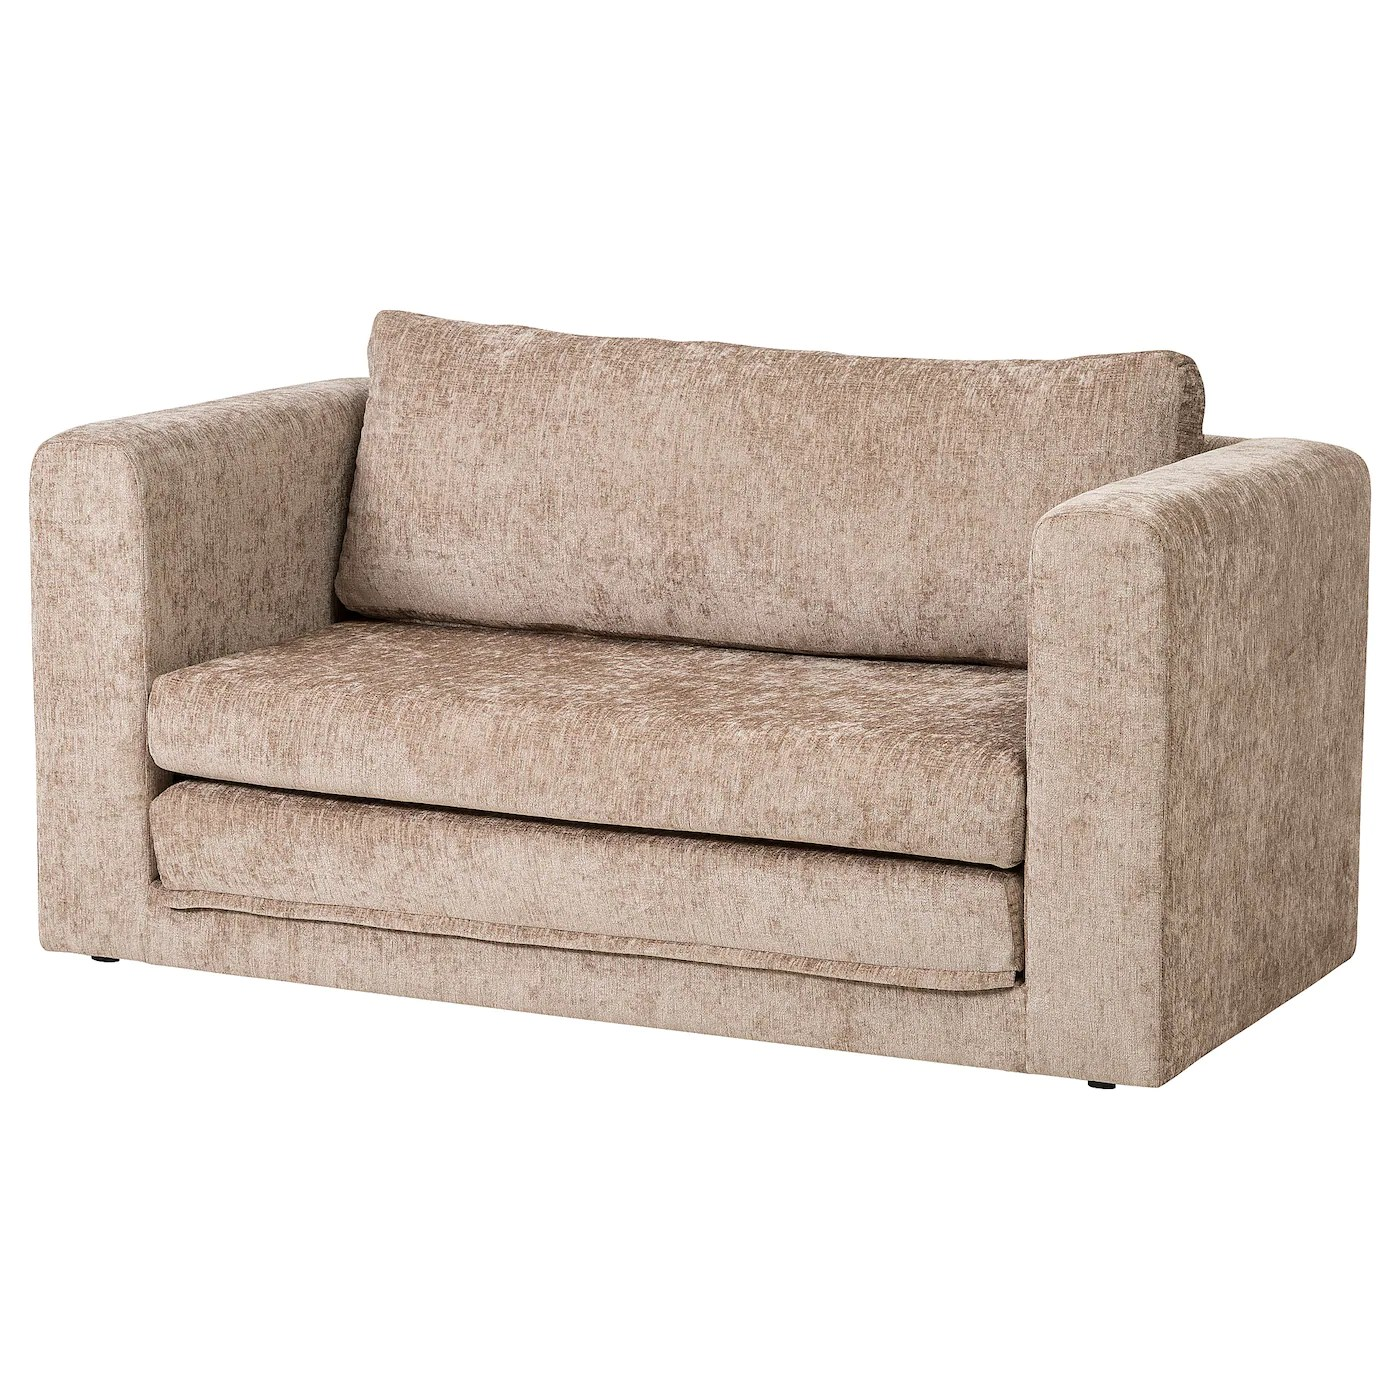 chair that opens into a bed child wooden rocking sofa beds ikea ireland dublin askeby 2 seat readily converts